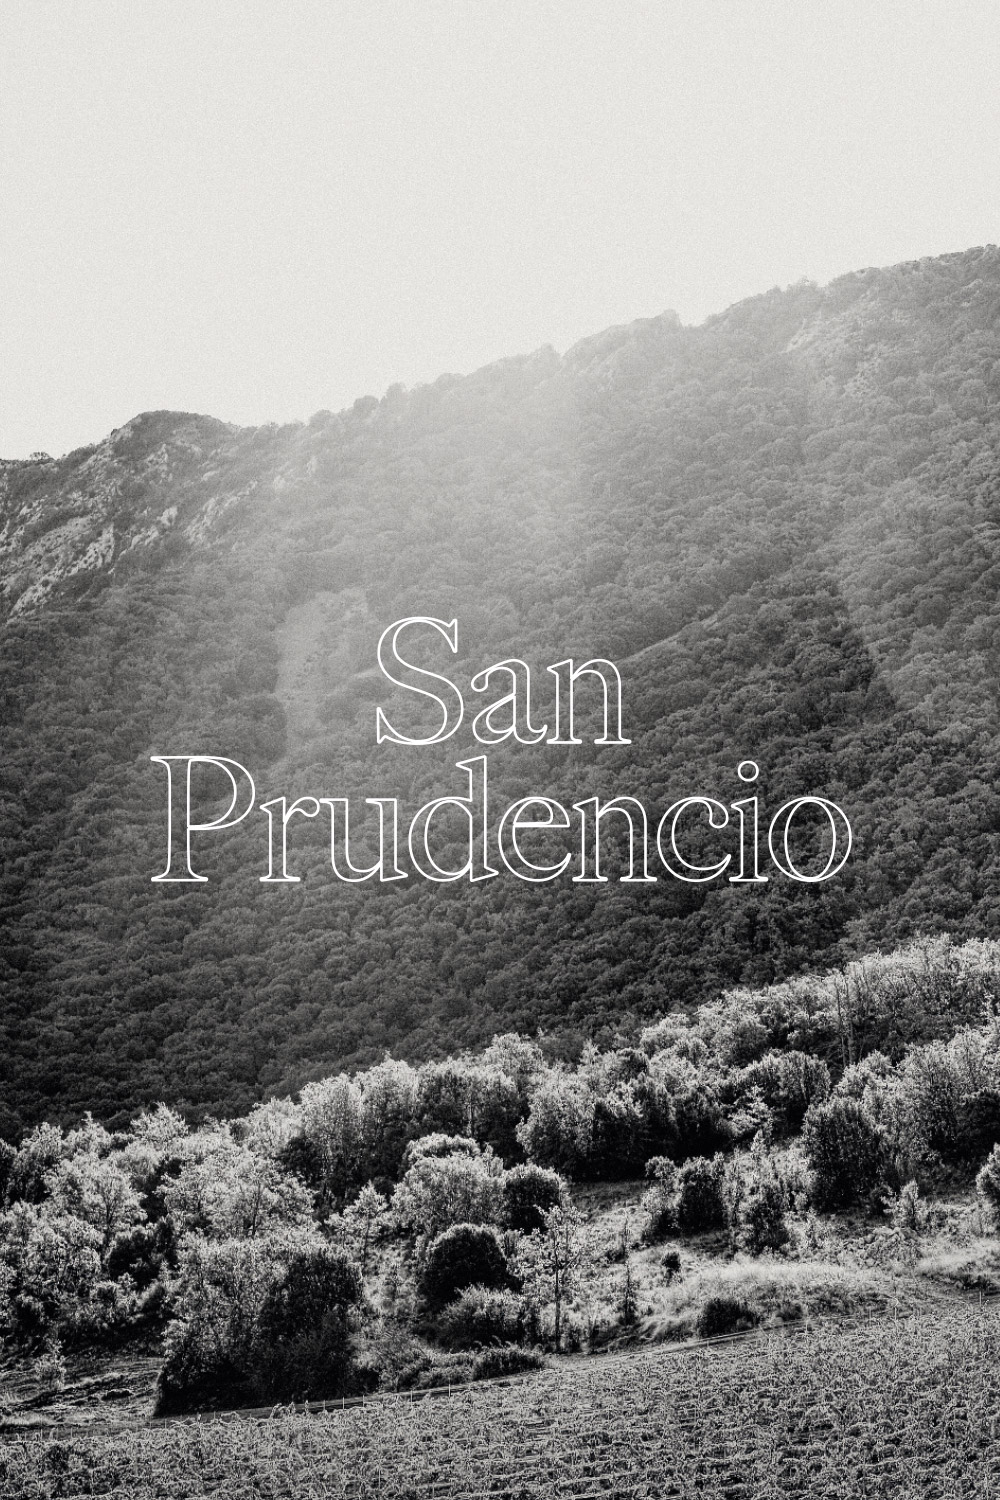 In a land of castles and conquerors, atop mountains, Ruben Saenz grows the vines that are the pride of Bodegas San Prudencio. Perseverance, centuries of know-how and braveness have resulted in vines growing at an unlikelyhigh altitude and wines that preserve the traditions and natural greatness of this land. - APPELLATION RIOJA ALTA